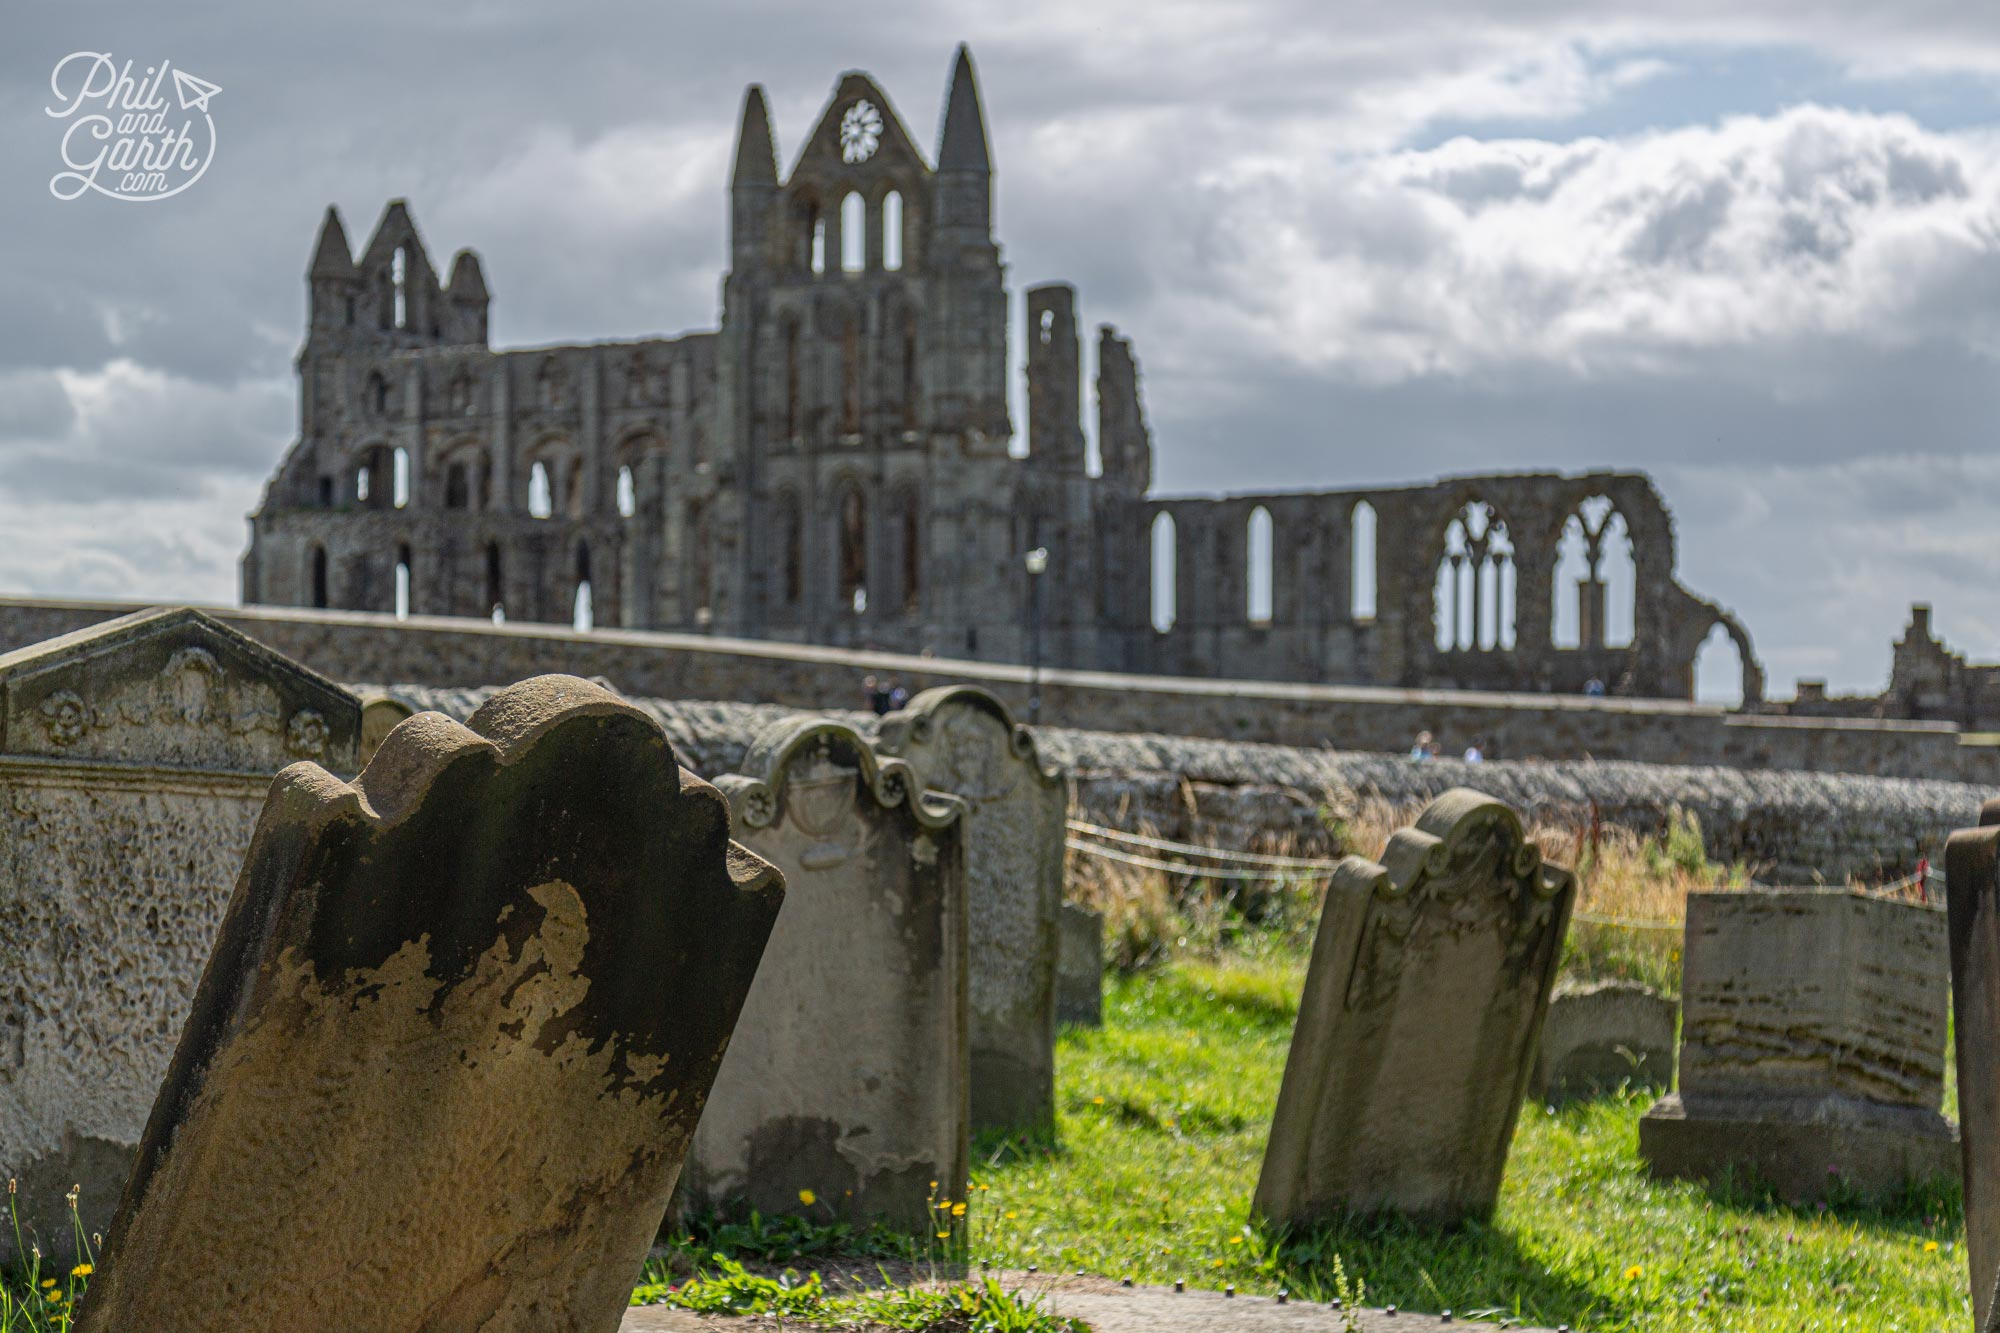 St Mary's graveyard with Whitby Abbey in the background